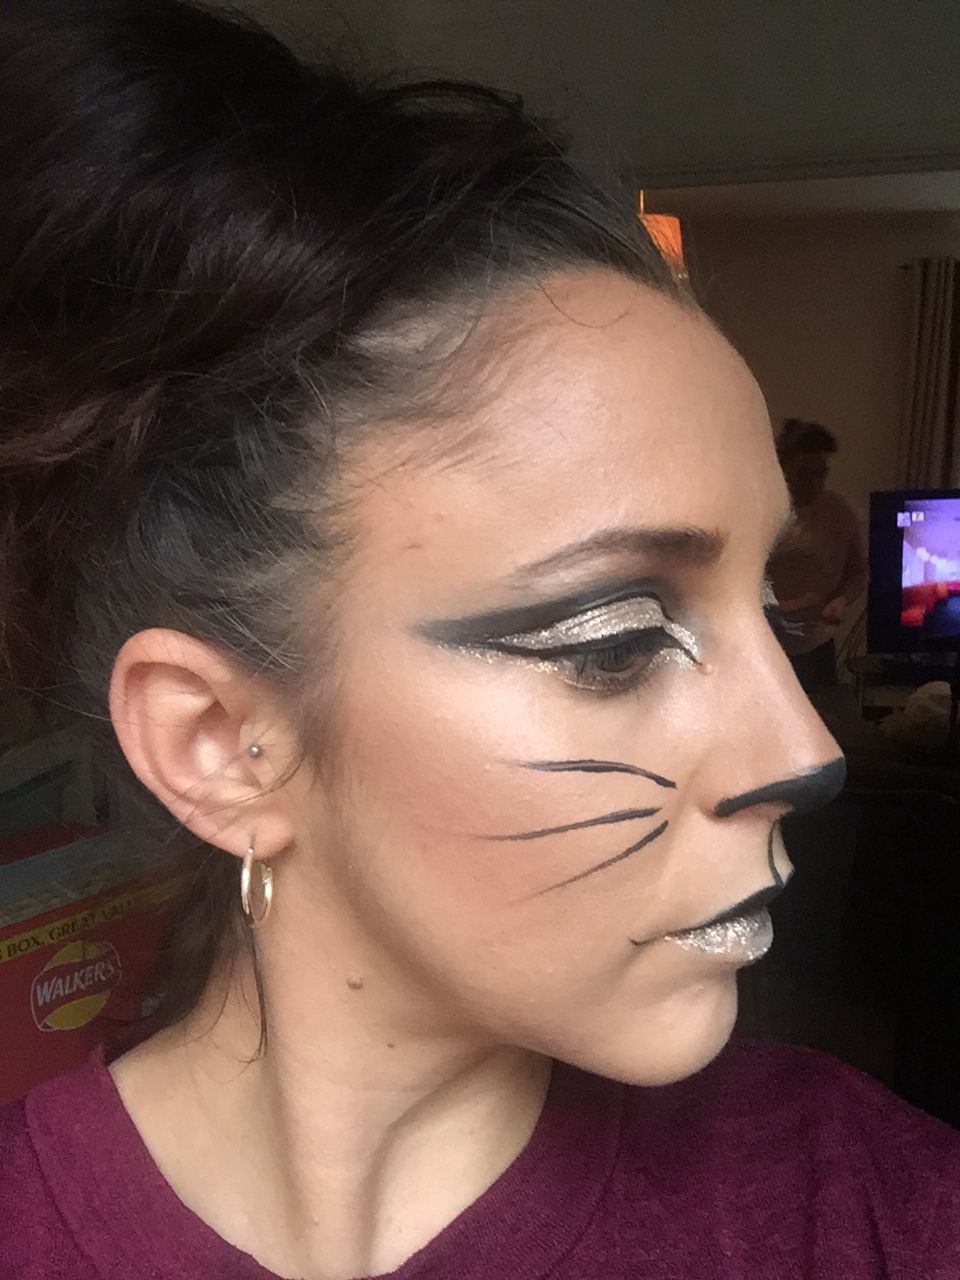 Quick trial of Halloween make up 👻😈☠️ glam cat